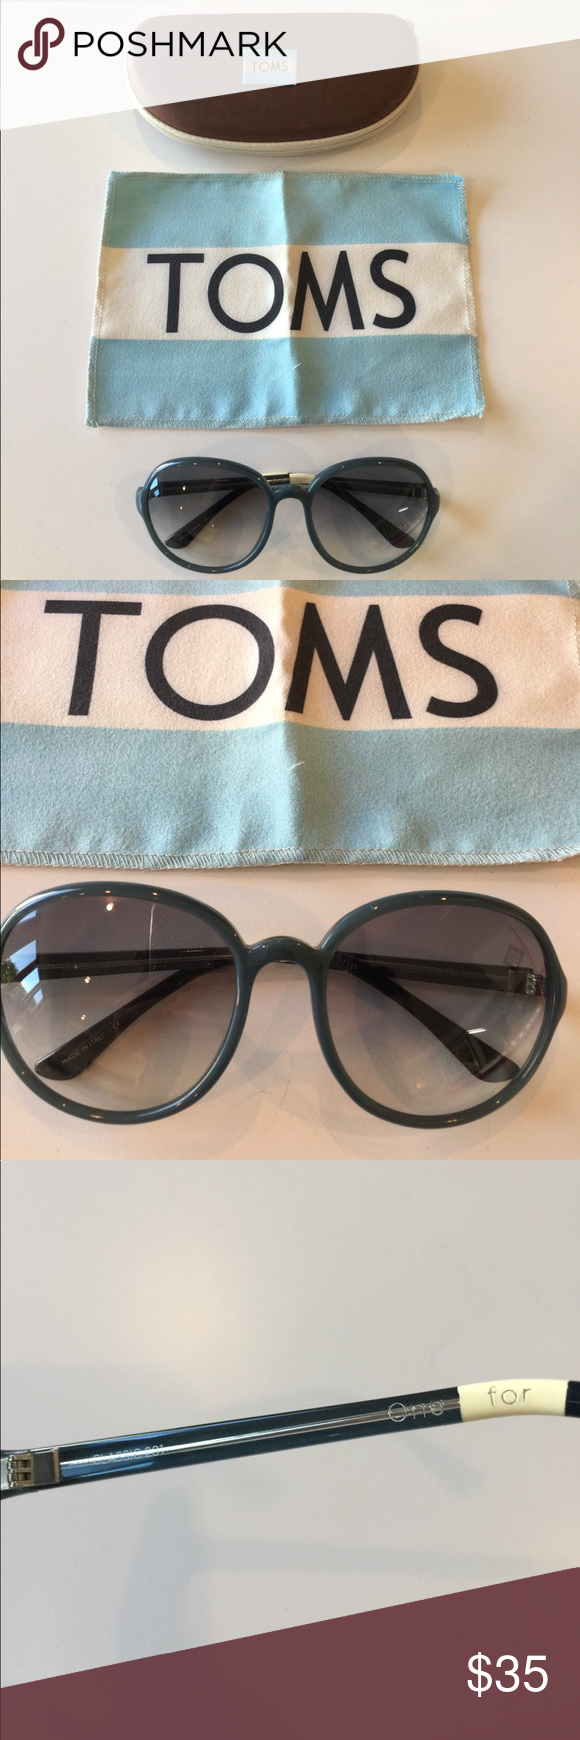 Toms classic Sunglasses in Jade color Authentic Toms classic 201 one ...